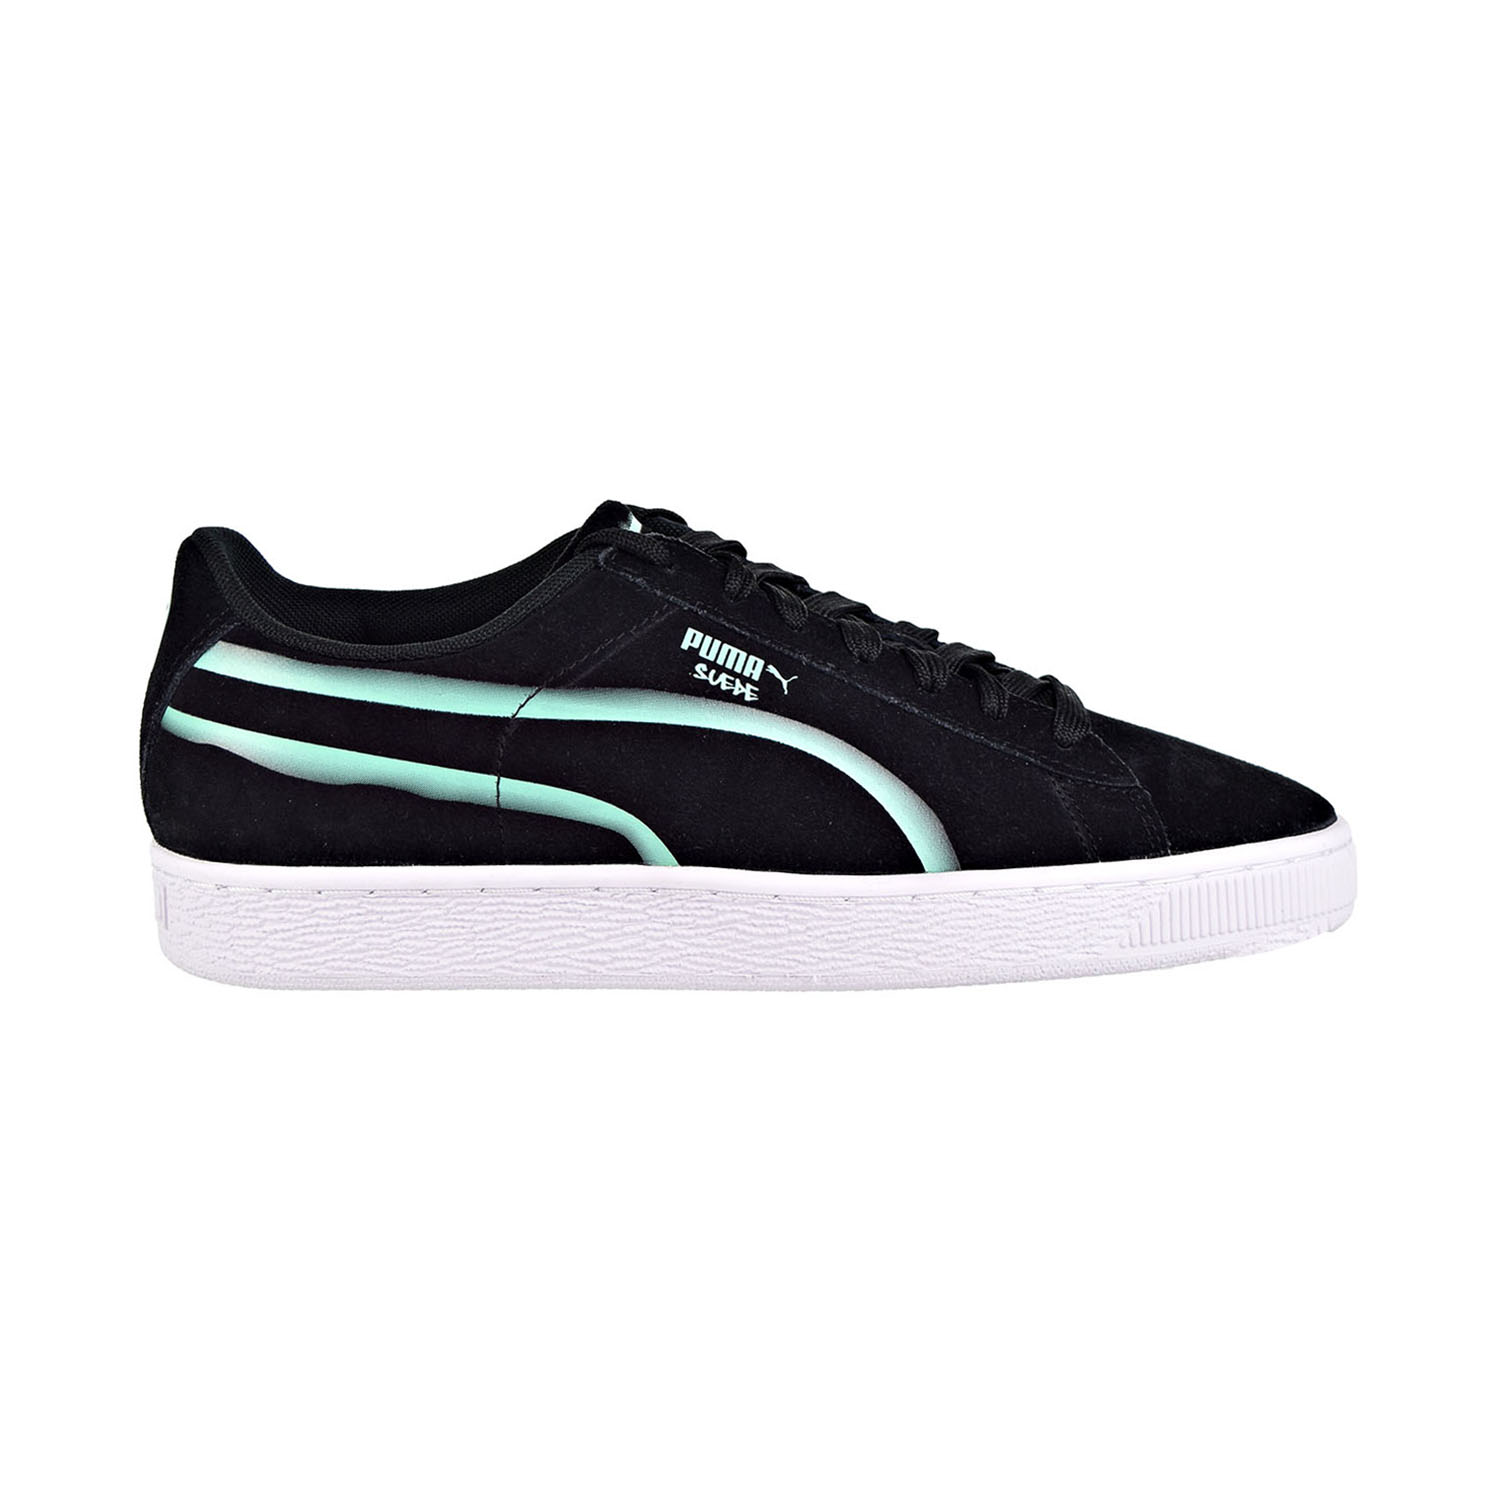 Details about Puma Suede Classic X Hollows Men's Shoes Puma Black/Biscay  Green 367394-01